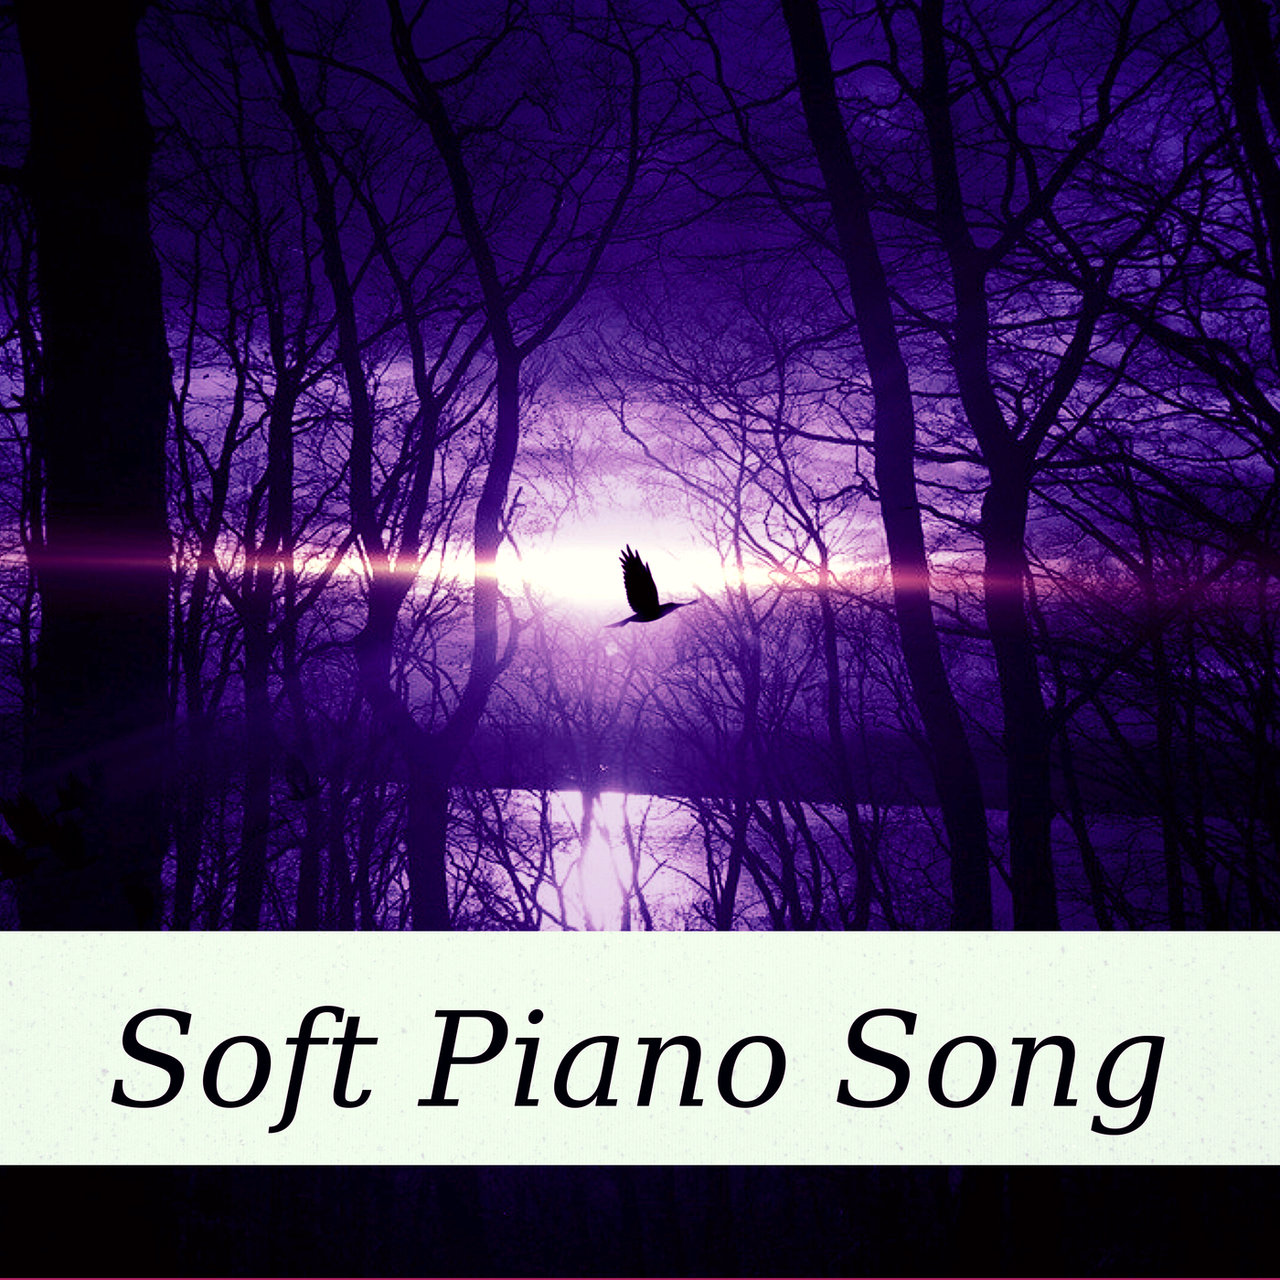 Baby bedtime music - Soft Piano Song Calm And Quiet Night Relaxing Piano Sleep Hypnosis Soothe Your Soul Bedtime Music Baby Sleep Lullaby Academy Tidal